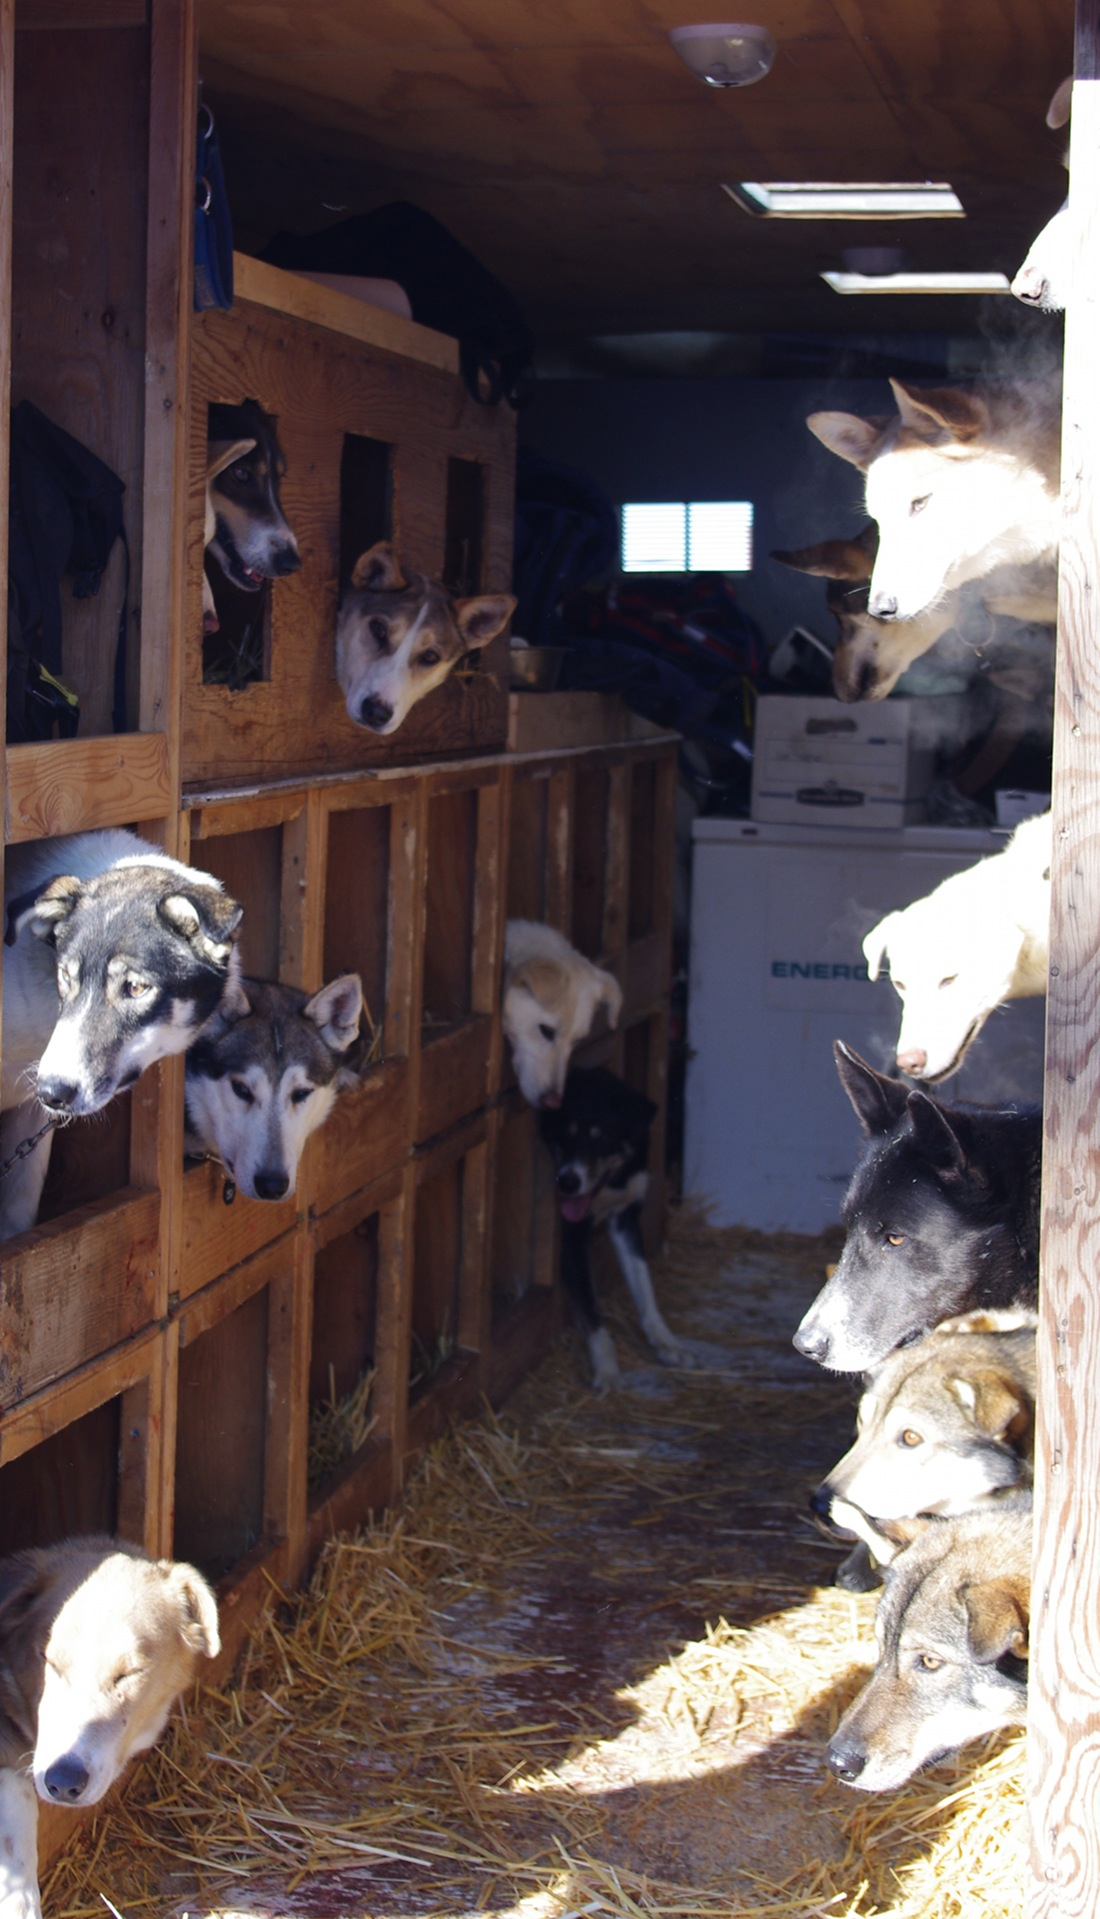 Sled dogs in a truck, from the Iditarod race, 2011.